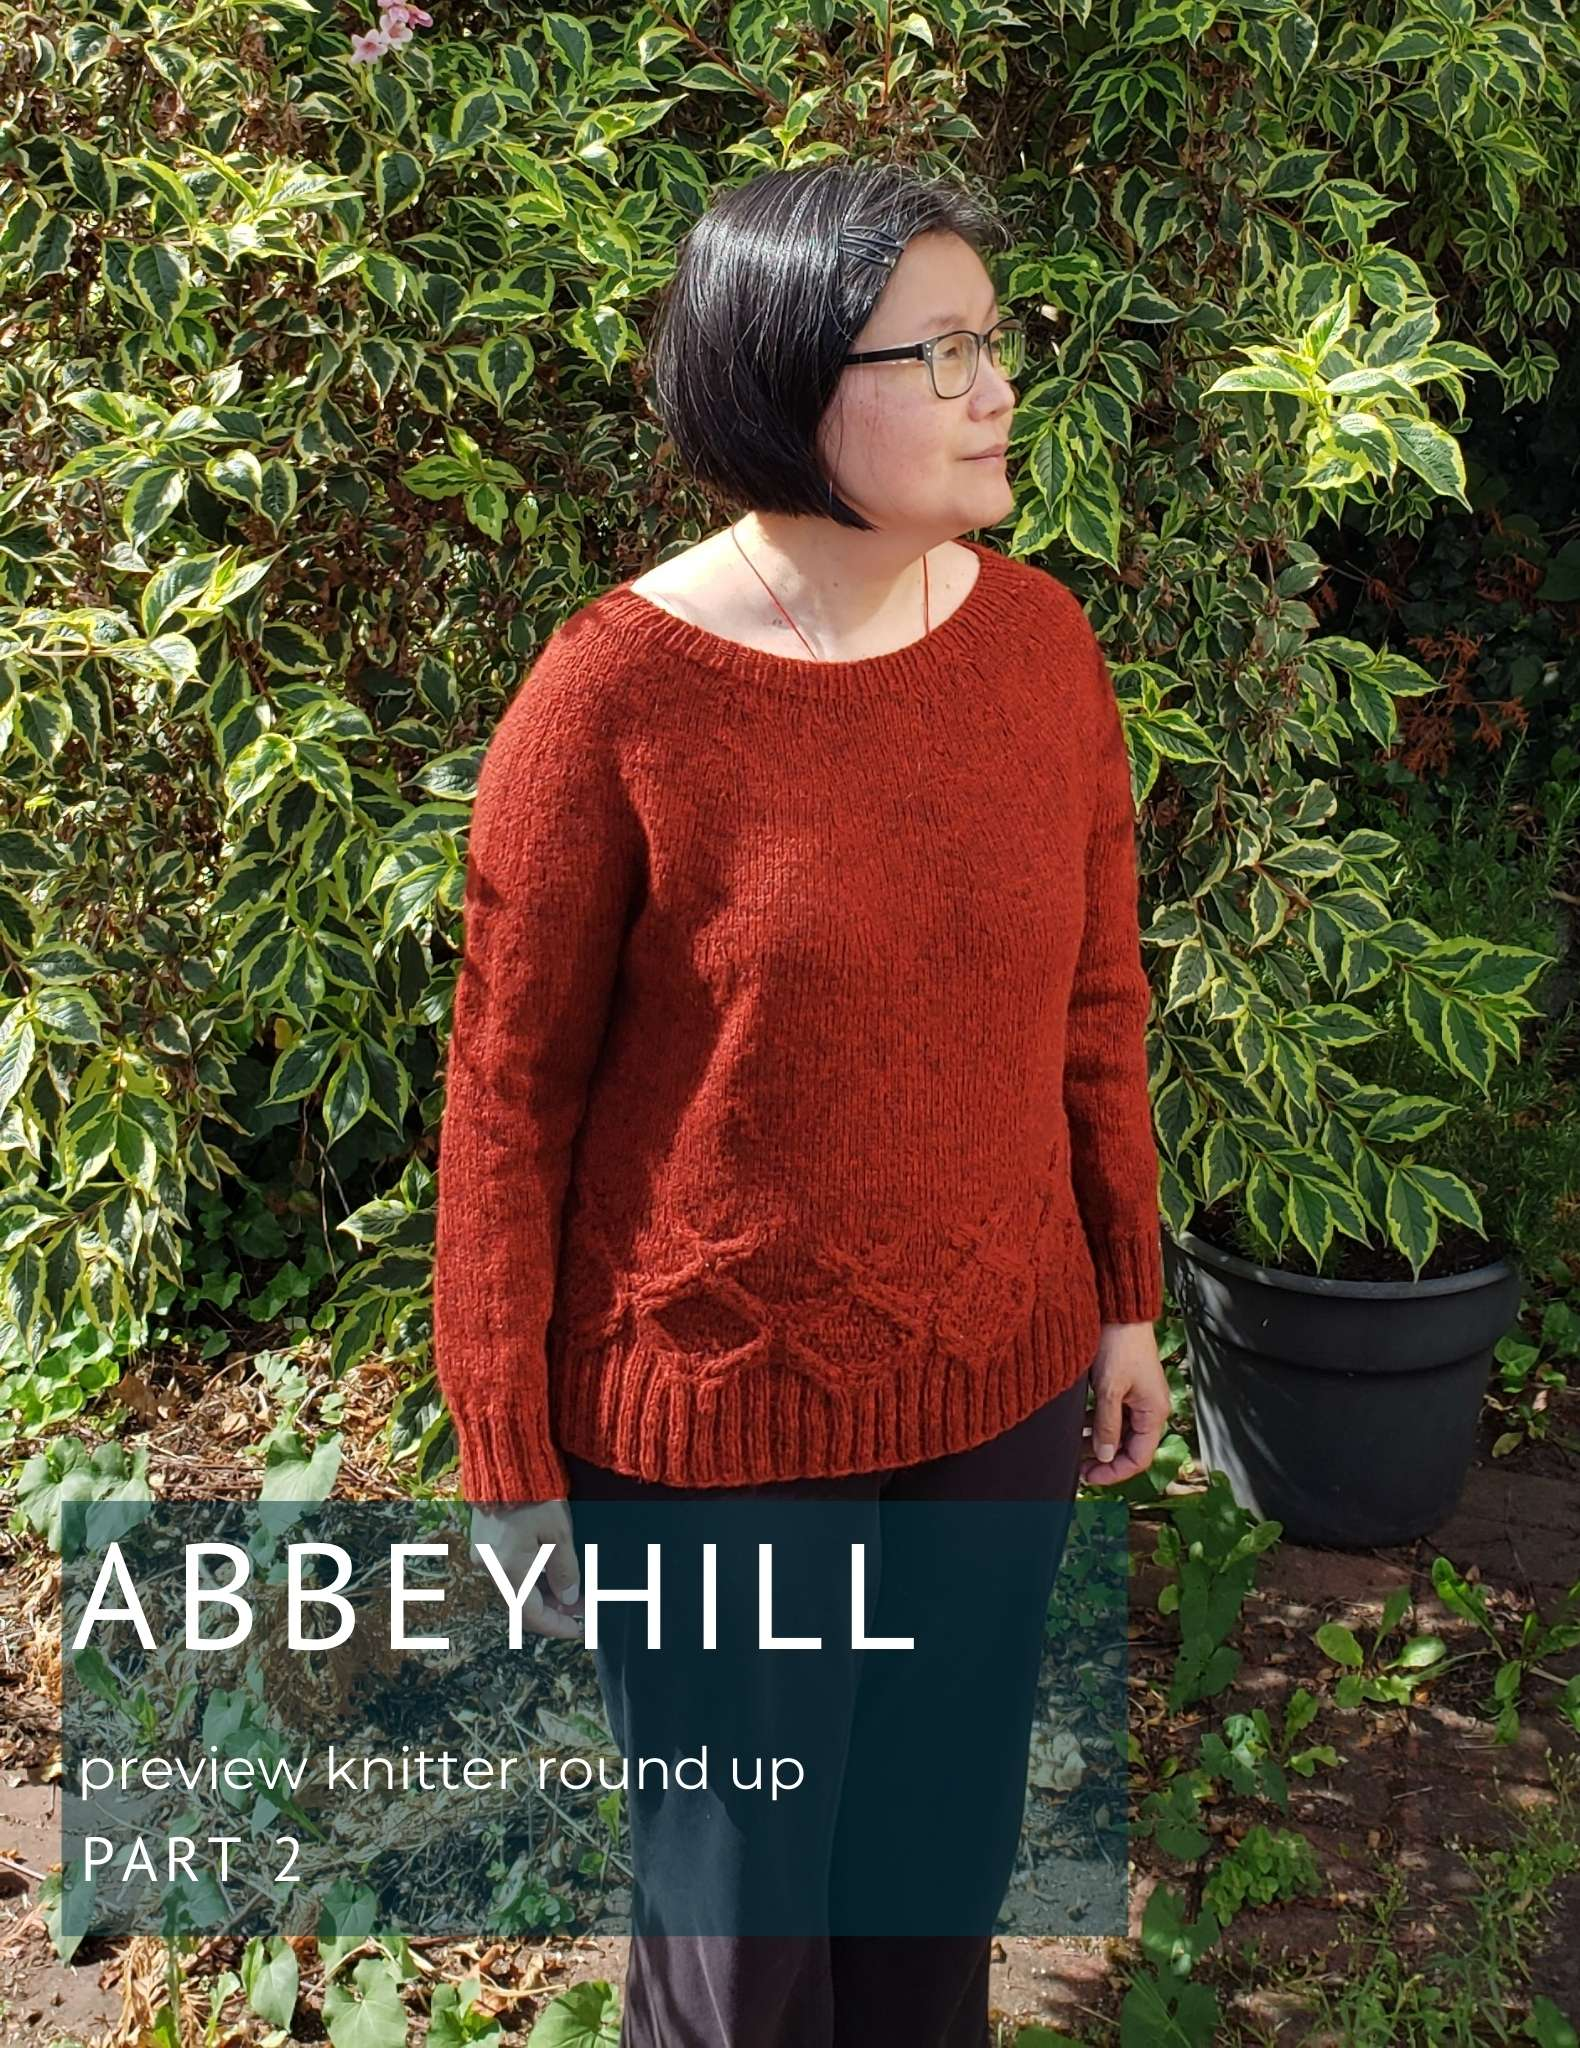 Abbeyhill: Preview knitter round up - Part 2